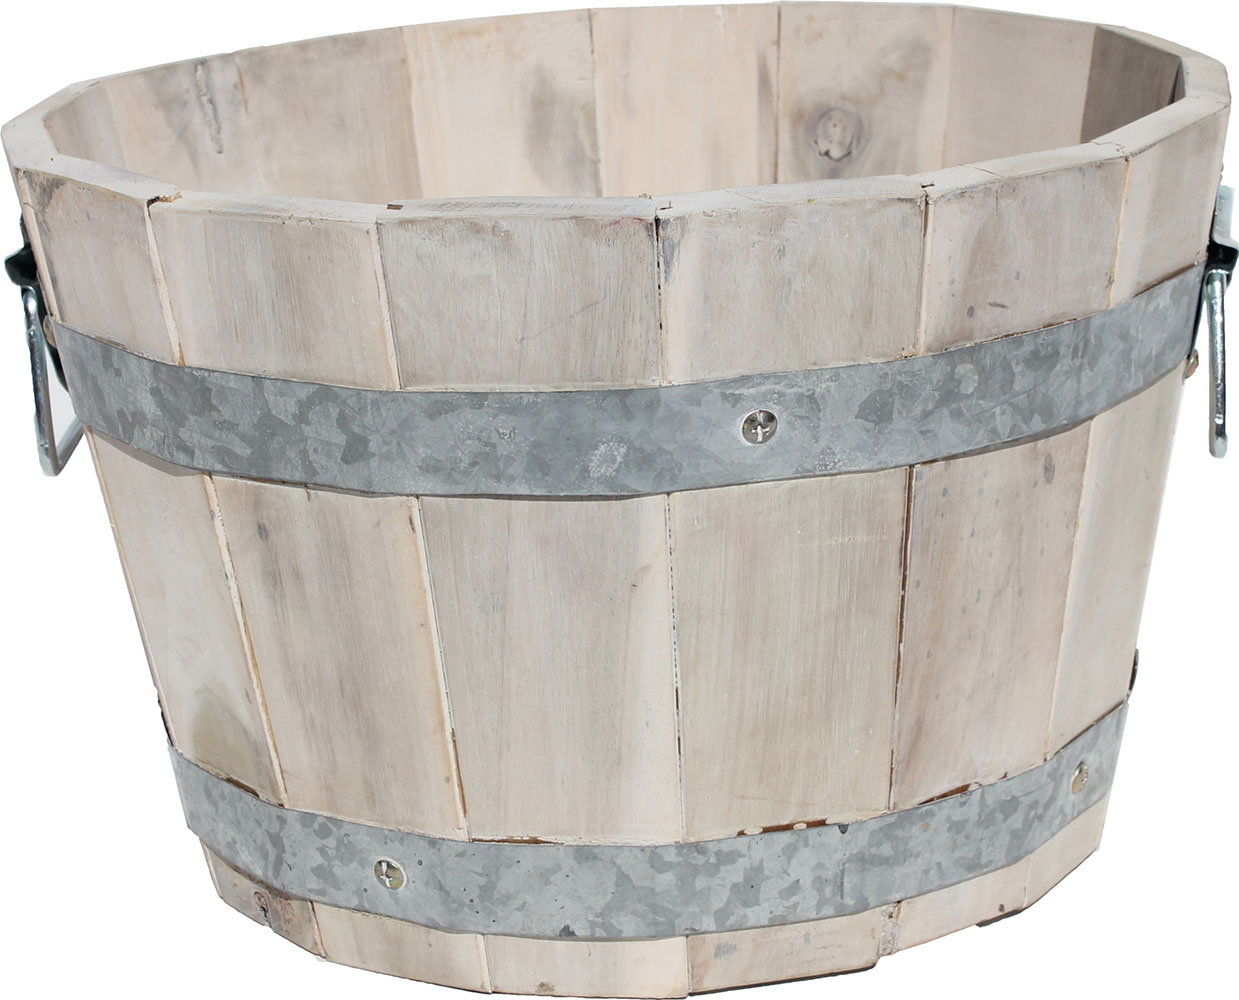 Image of: Wooden Garden Planter